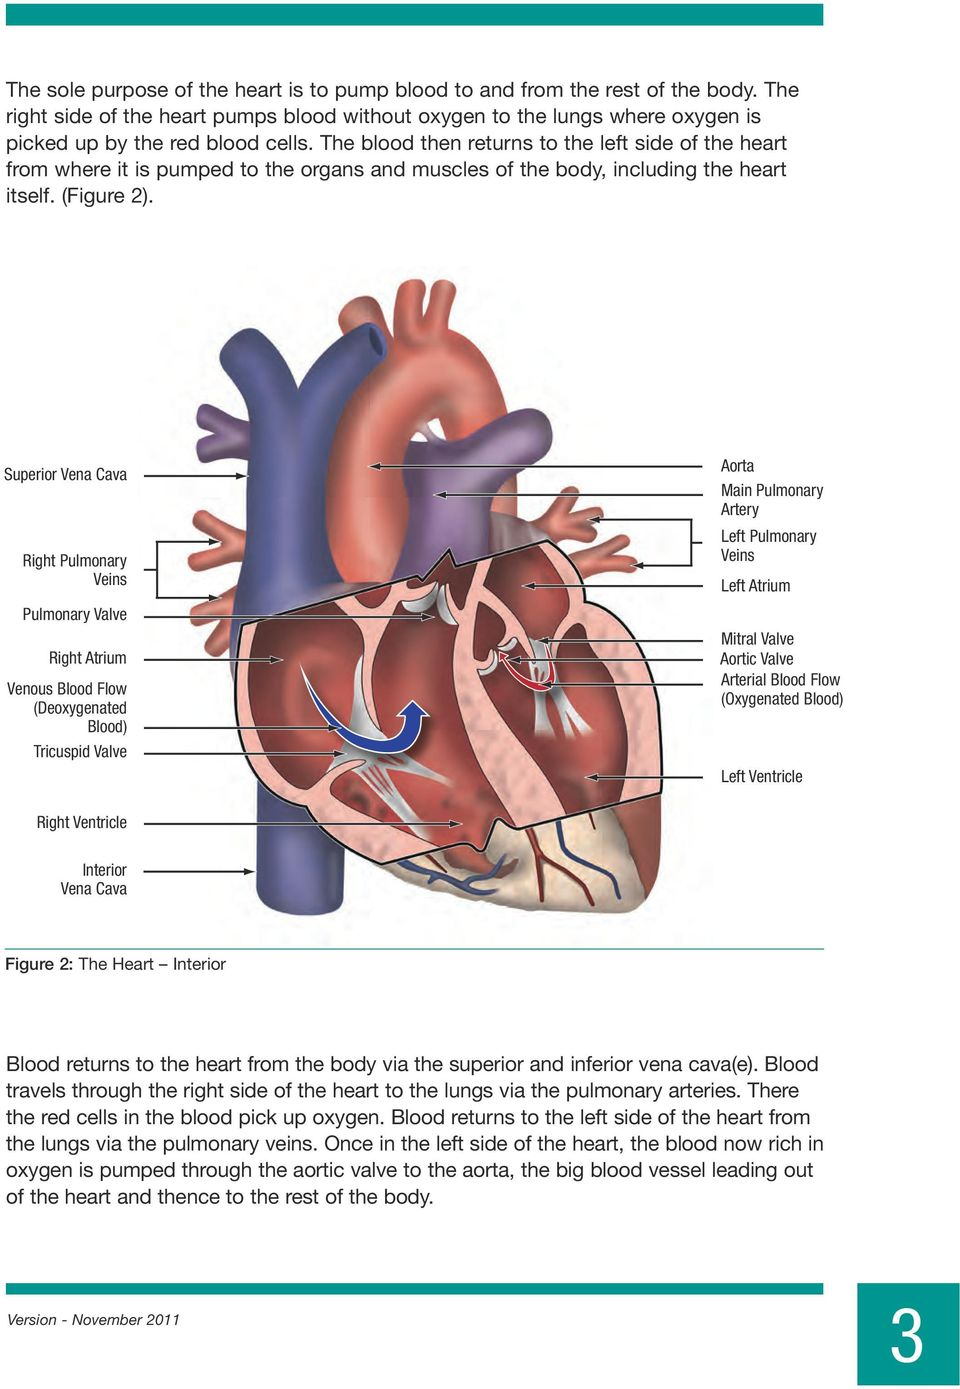 Superior Vena Cava Right Pulmonary Veins Aorta Main Pulmonary Artery Left Pulmonary Veins Left Atrium Pulmonary Valve Right Atrium Venous Blood Flow (Deoxygenated Blood) Tricuspid Valve Mitral Valve